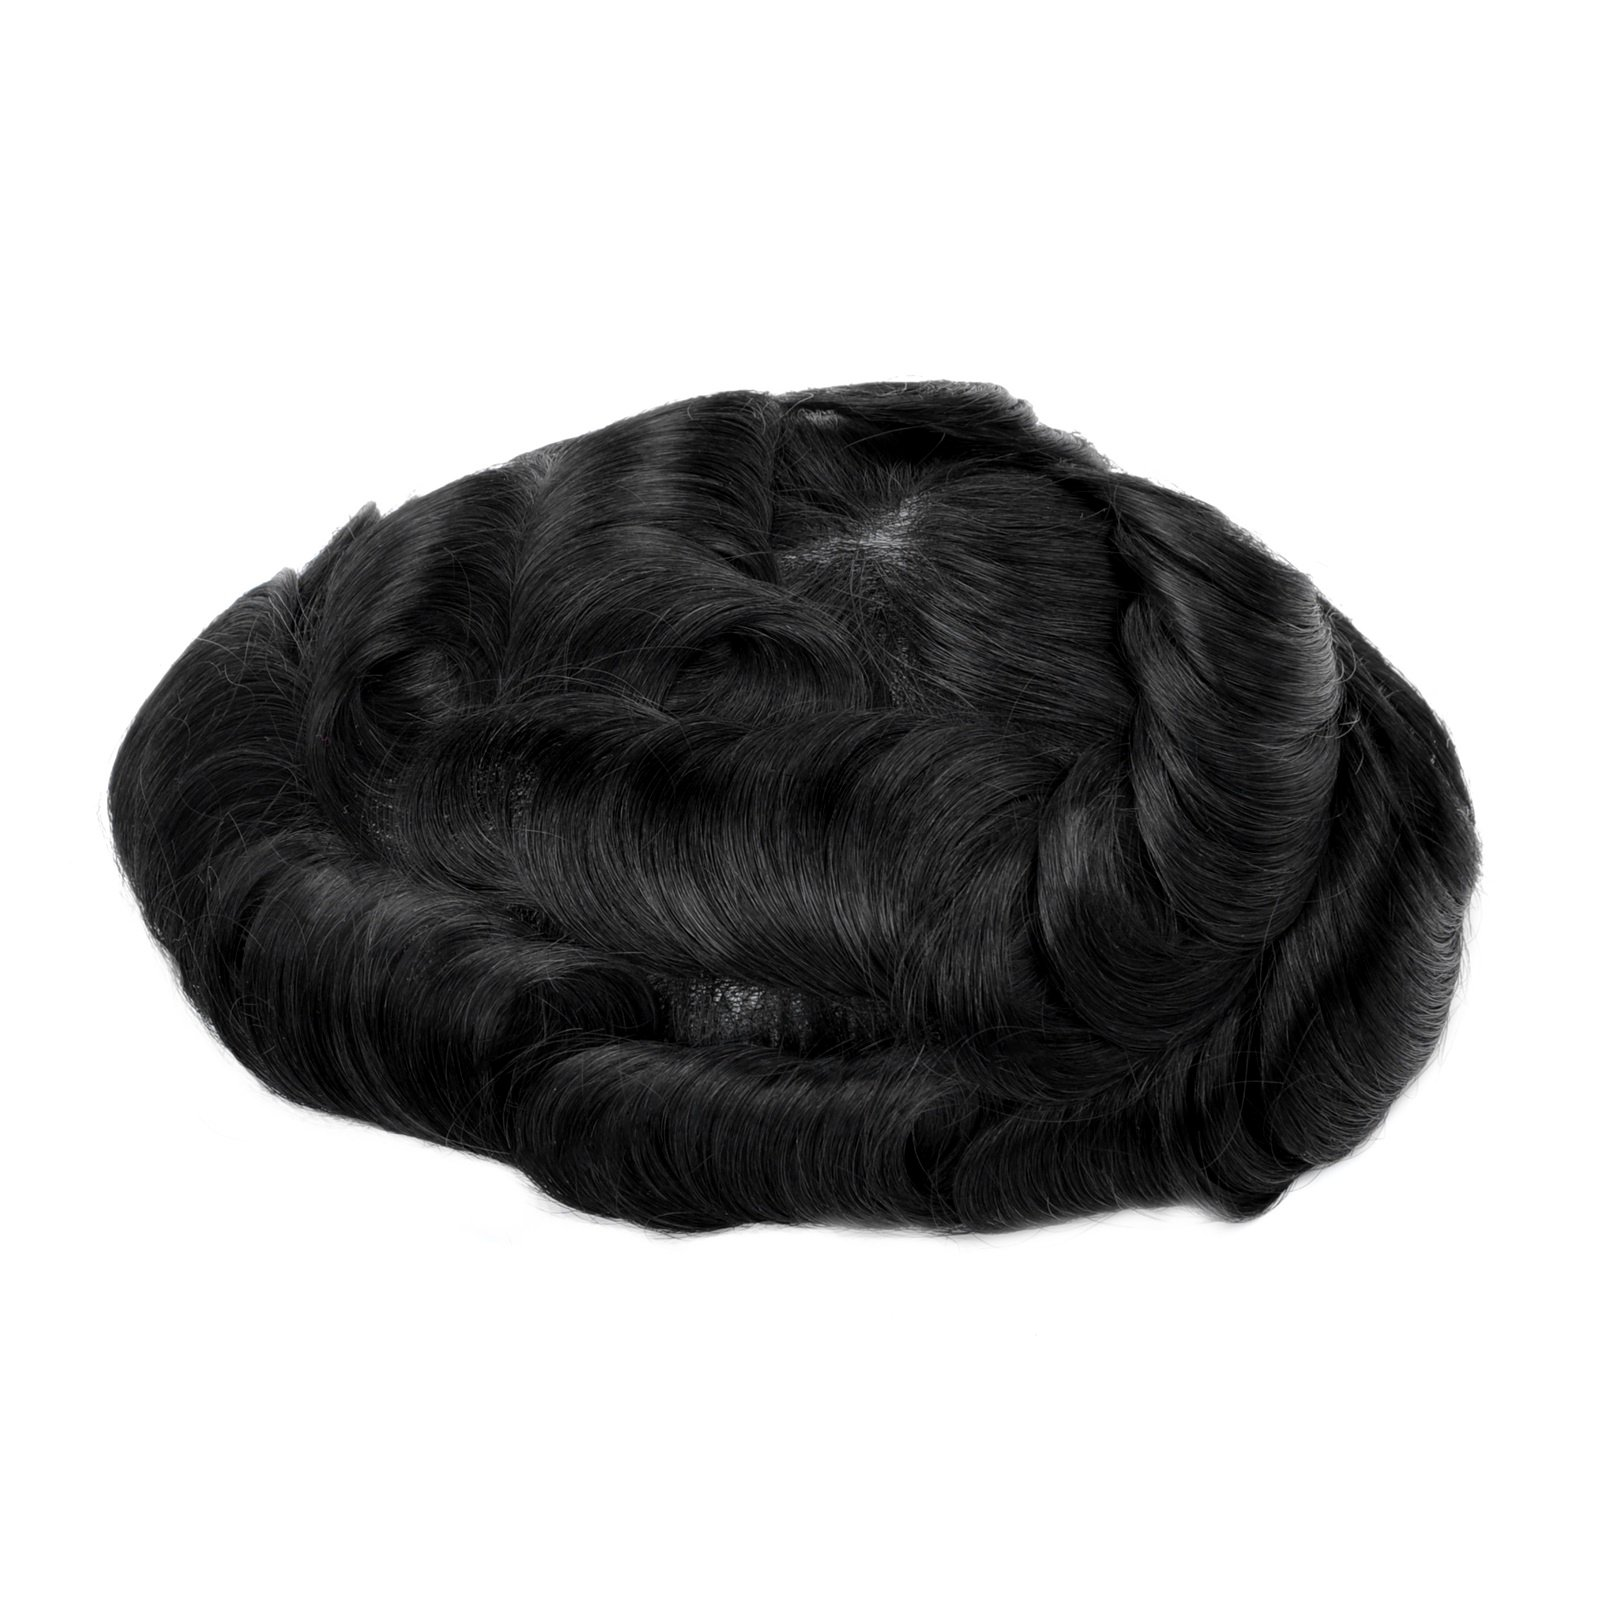 Mens Toupee Hairpiece Mirage Human Hair Systems 1#(Deep Black)